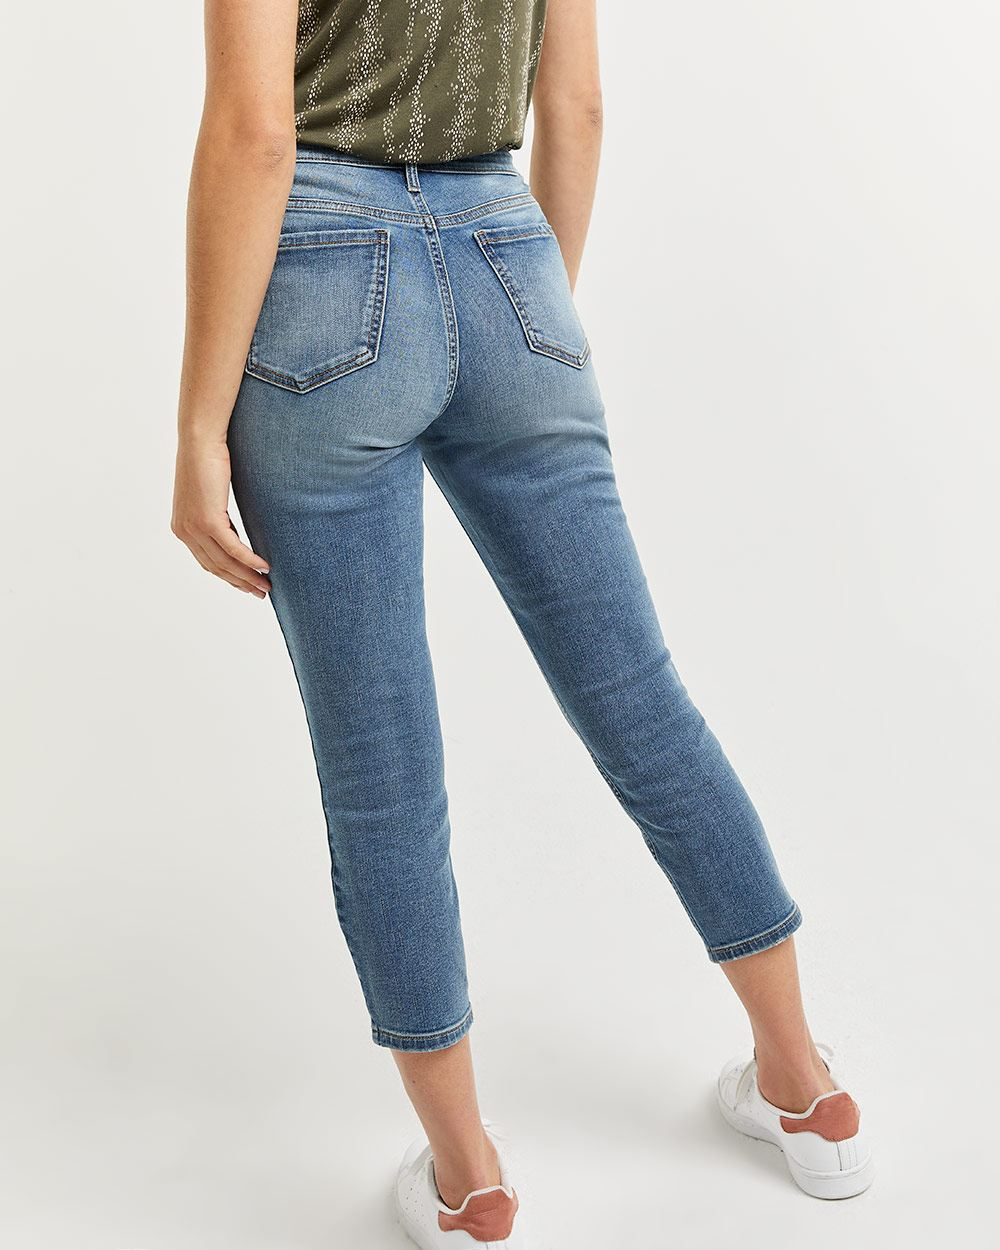 Skinny Cropped Jeans The Insider